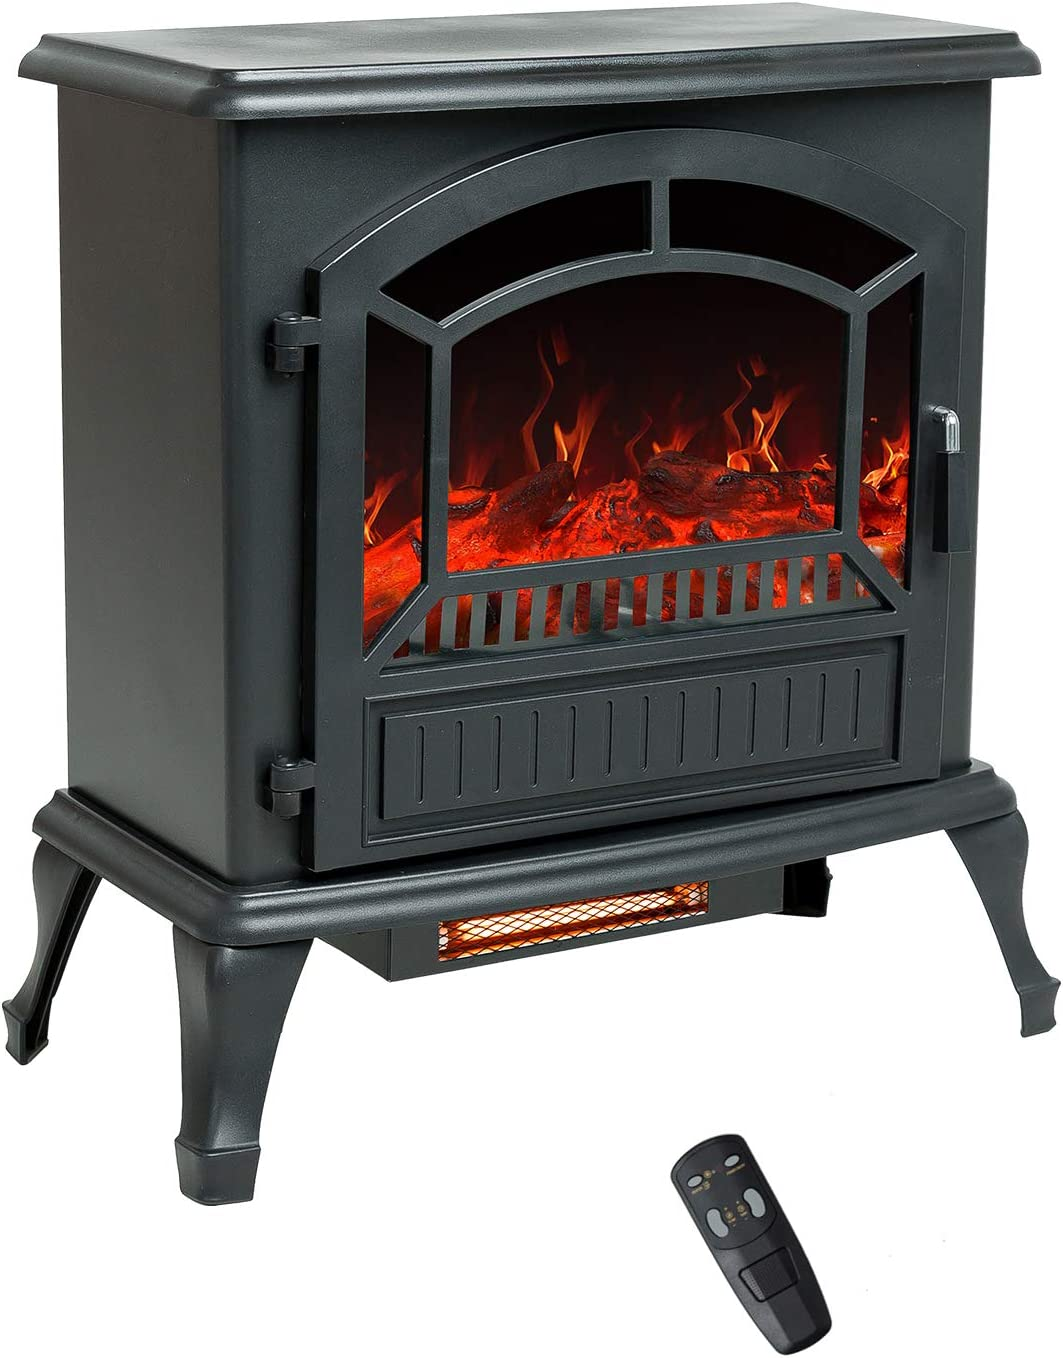 Flame Shade 25 Inch Electric Fireplace Wood Stove Portable Freestanding Indoor Space Heater With Remote Timer 1500 750w Kitchen Dining